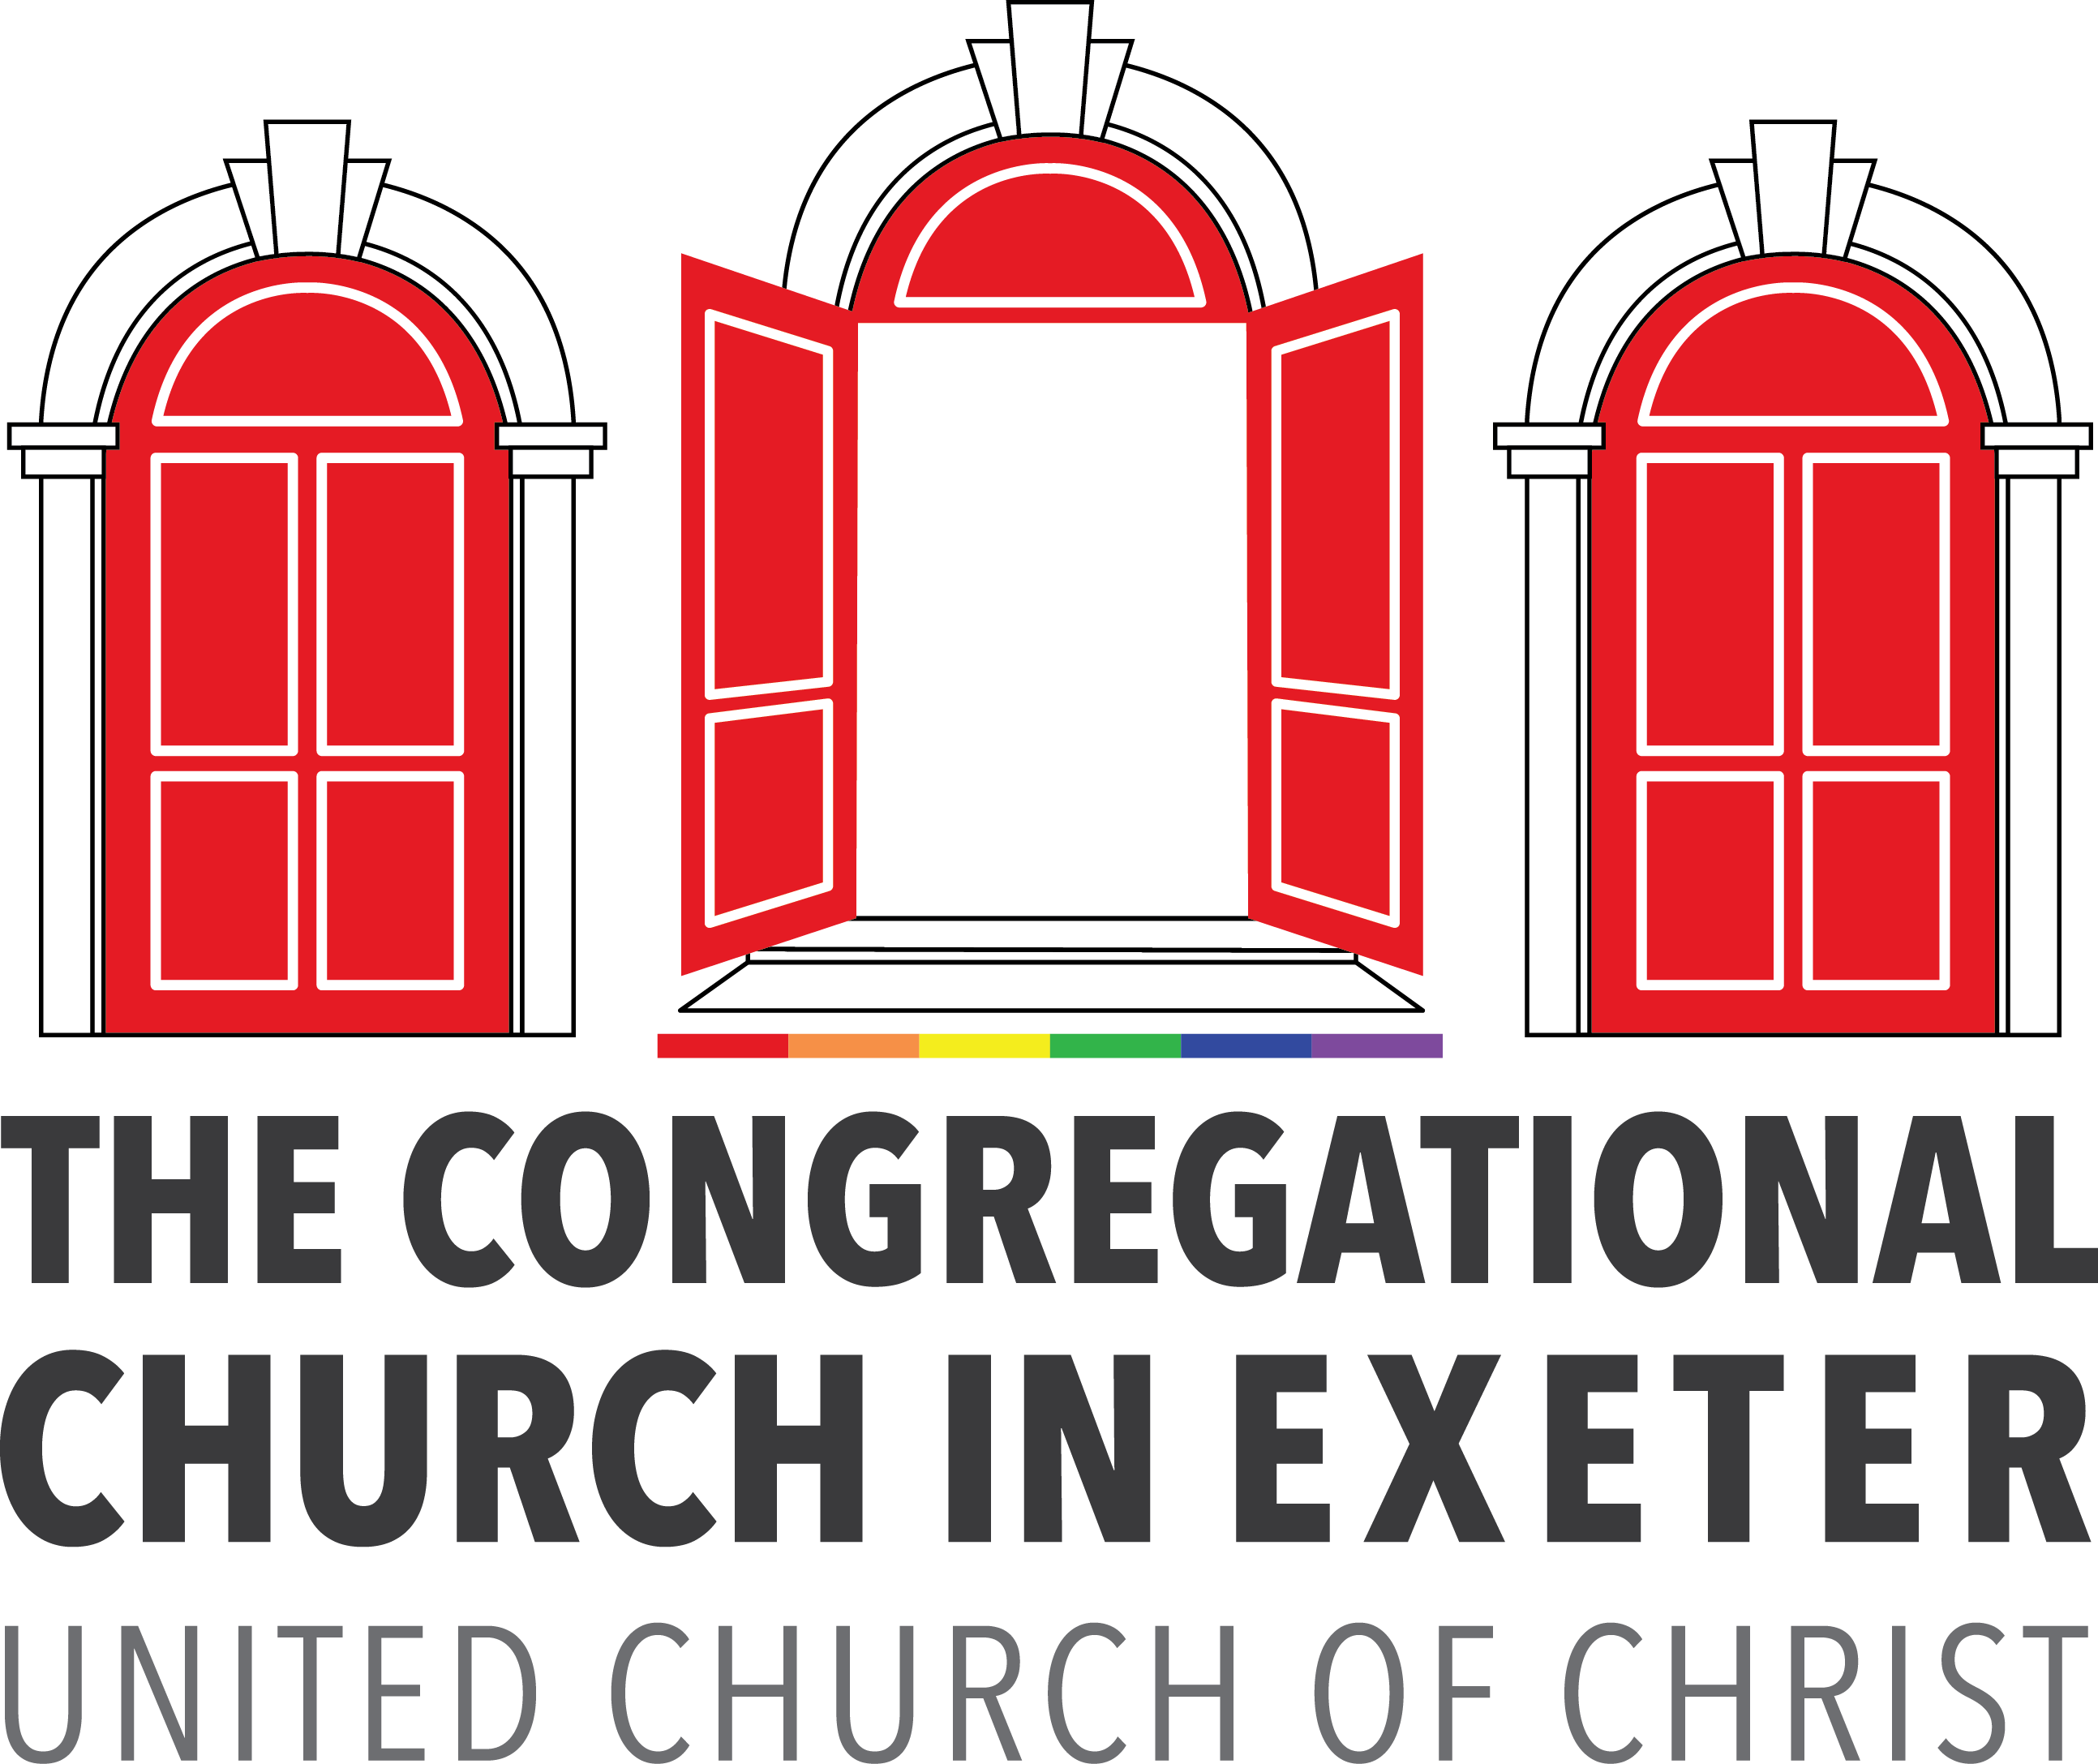 Newsletter clipart church office. Exeterucc org the congregational